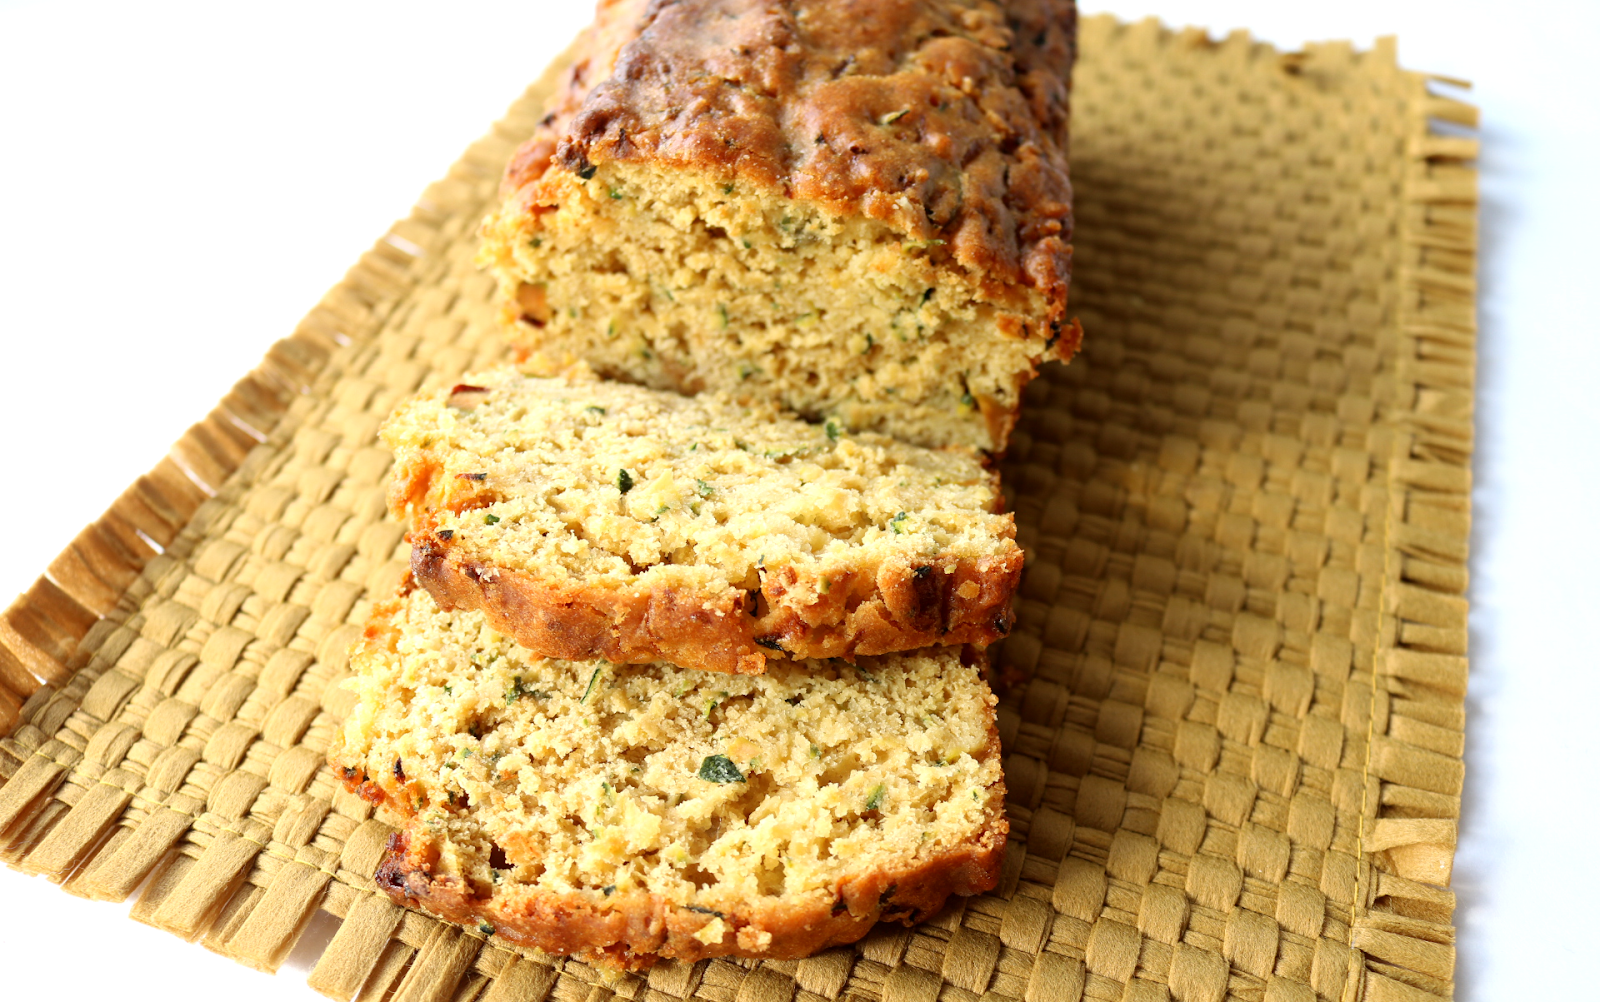 Courgette & Lemon Cake (Vegetarian recipe)